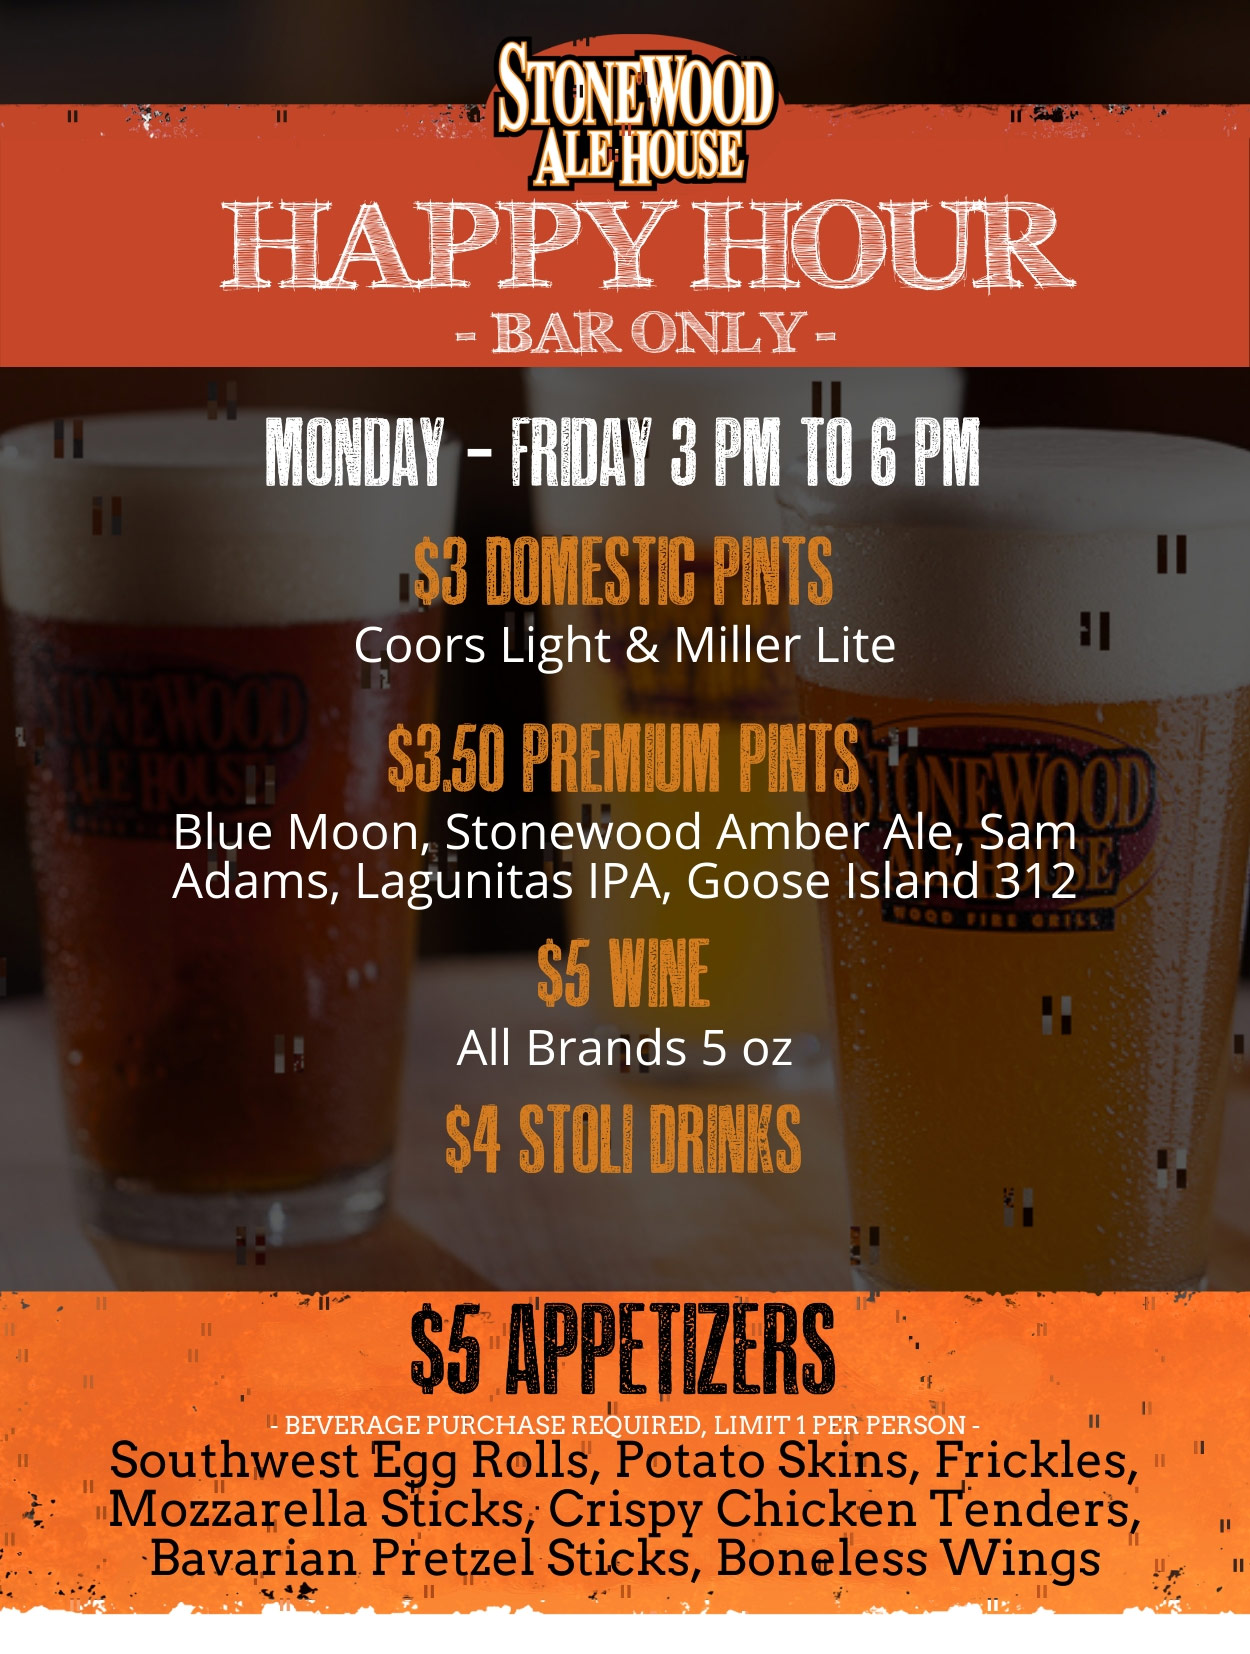 Happy Hour specials at Stonewood Ale House in Schaumburg